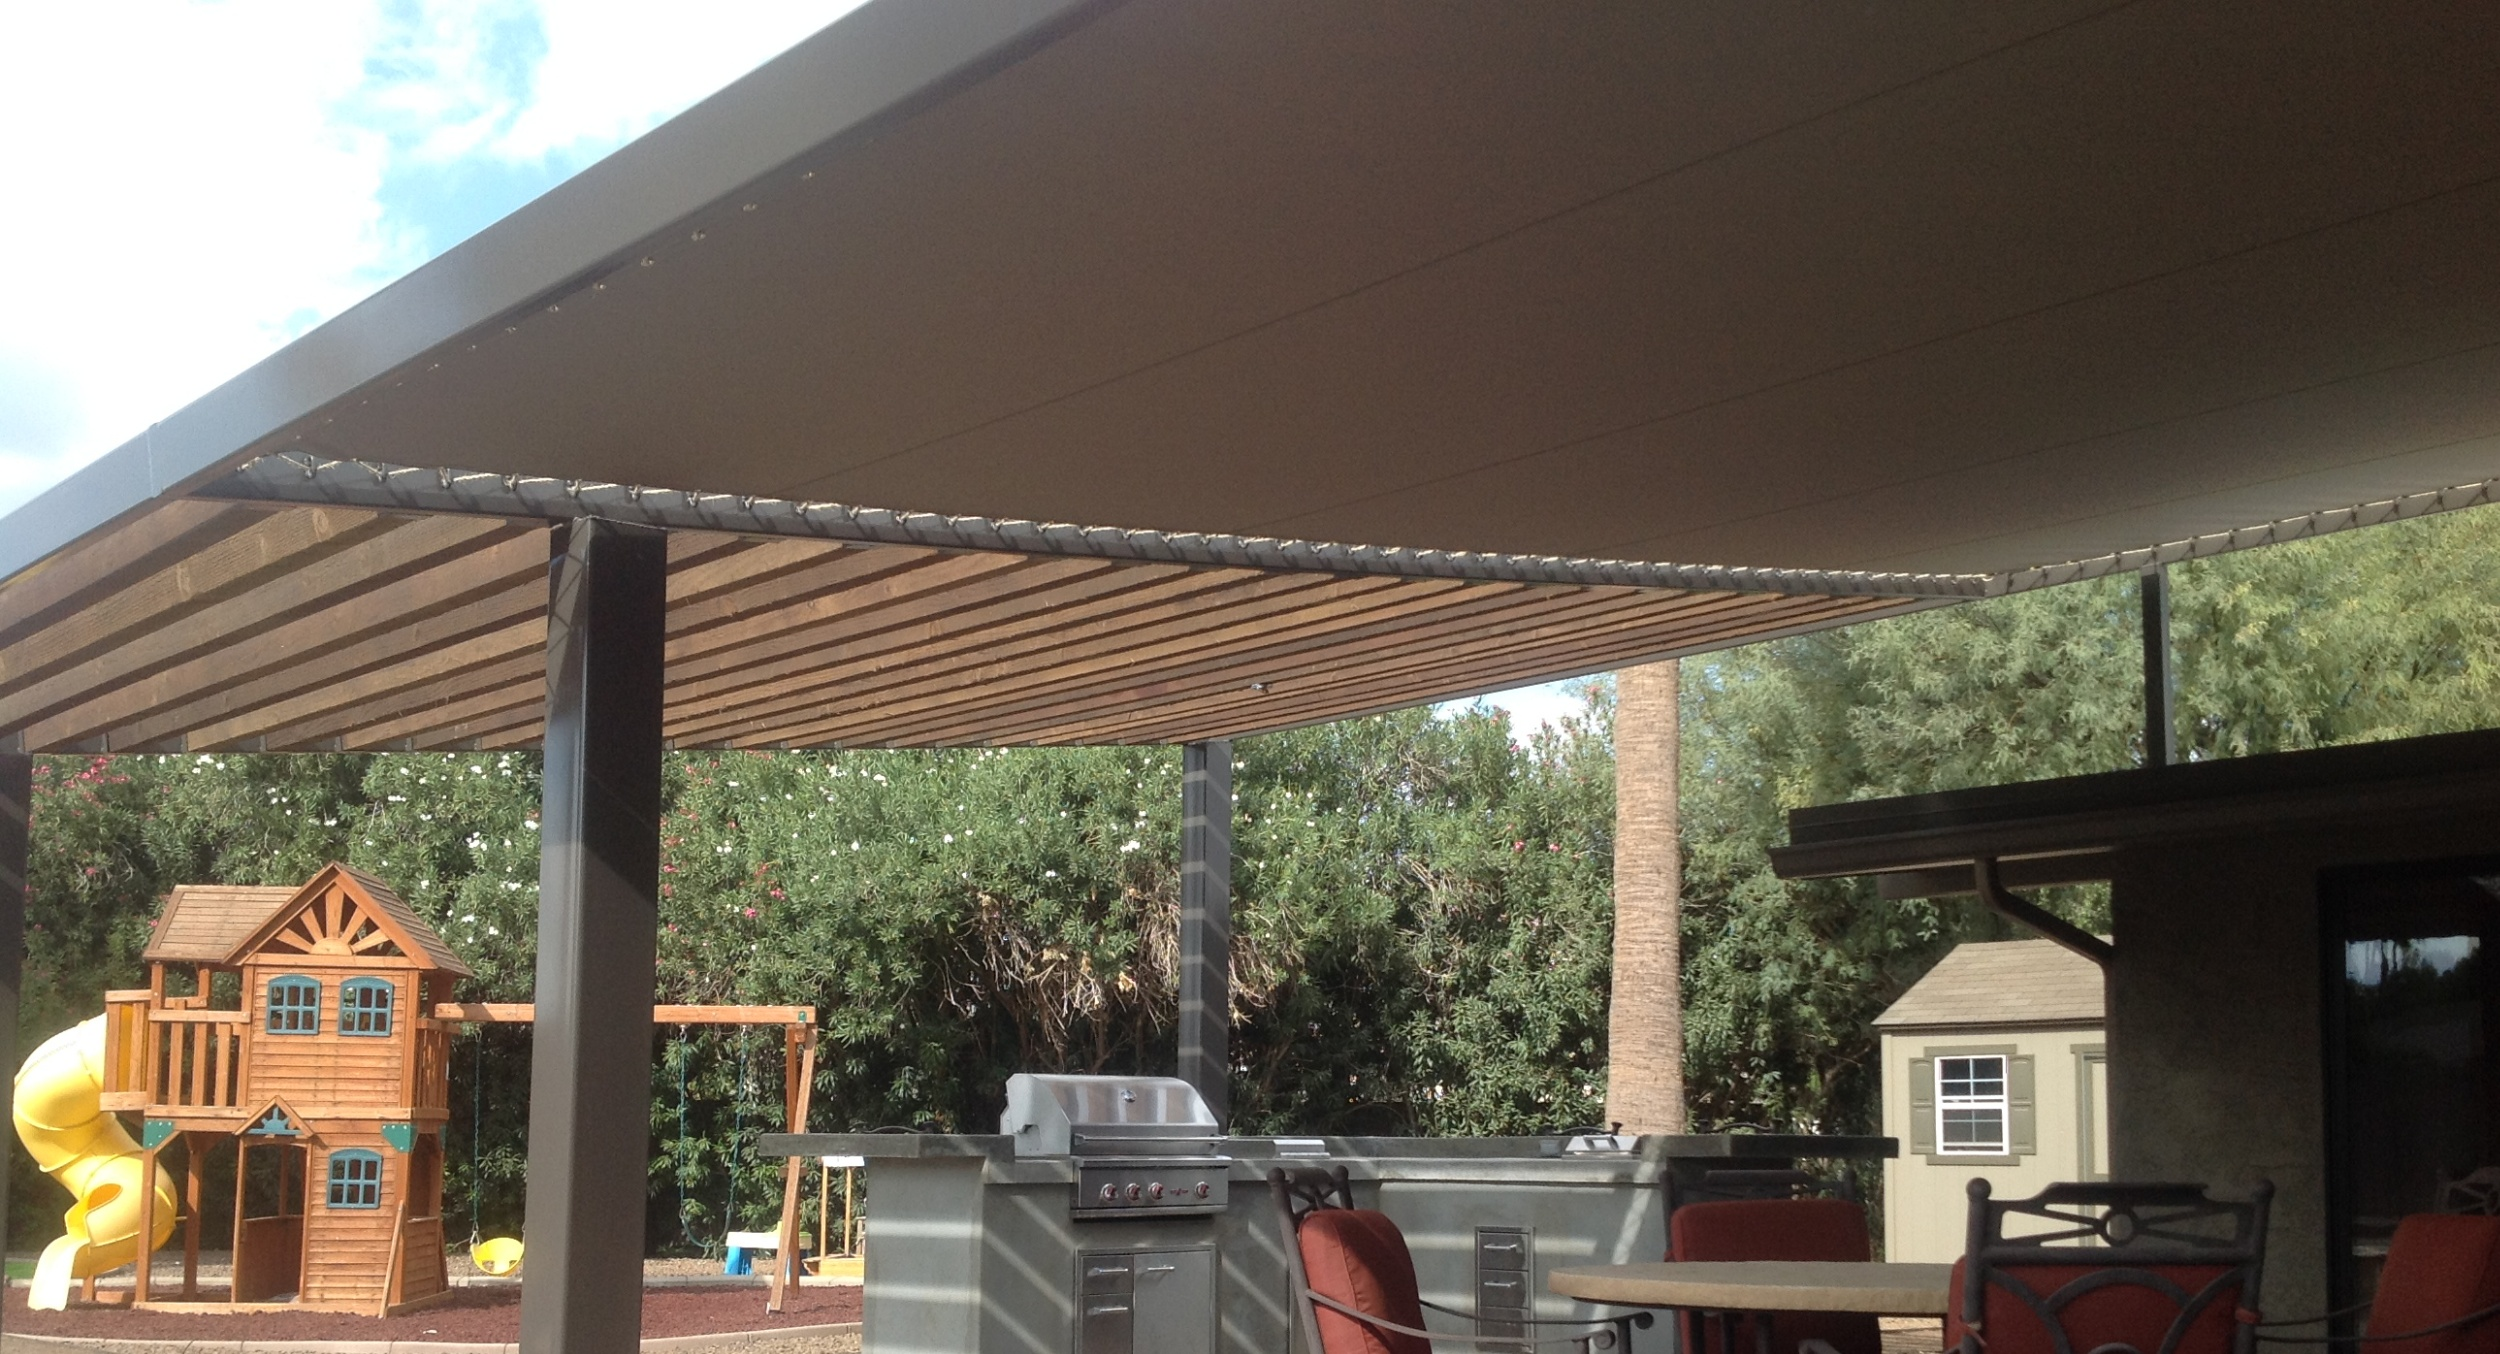 Solid roof pergolas cast way more shade that slat roof versions. Our custom Sunbrella roof pergolas, Scottsdale clients had us design and build will give them tons of shade for decades to come.